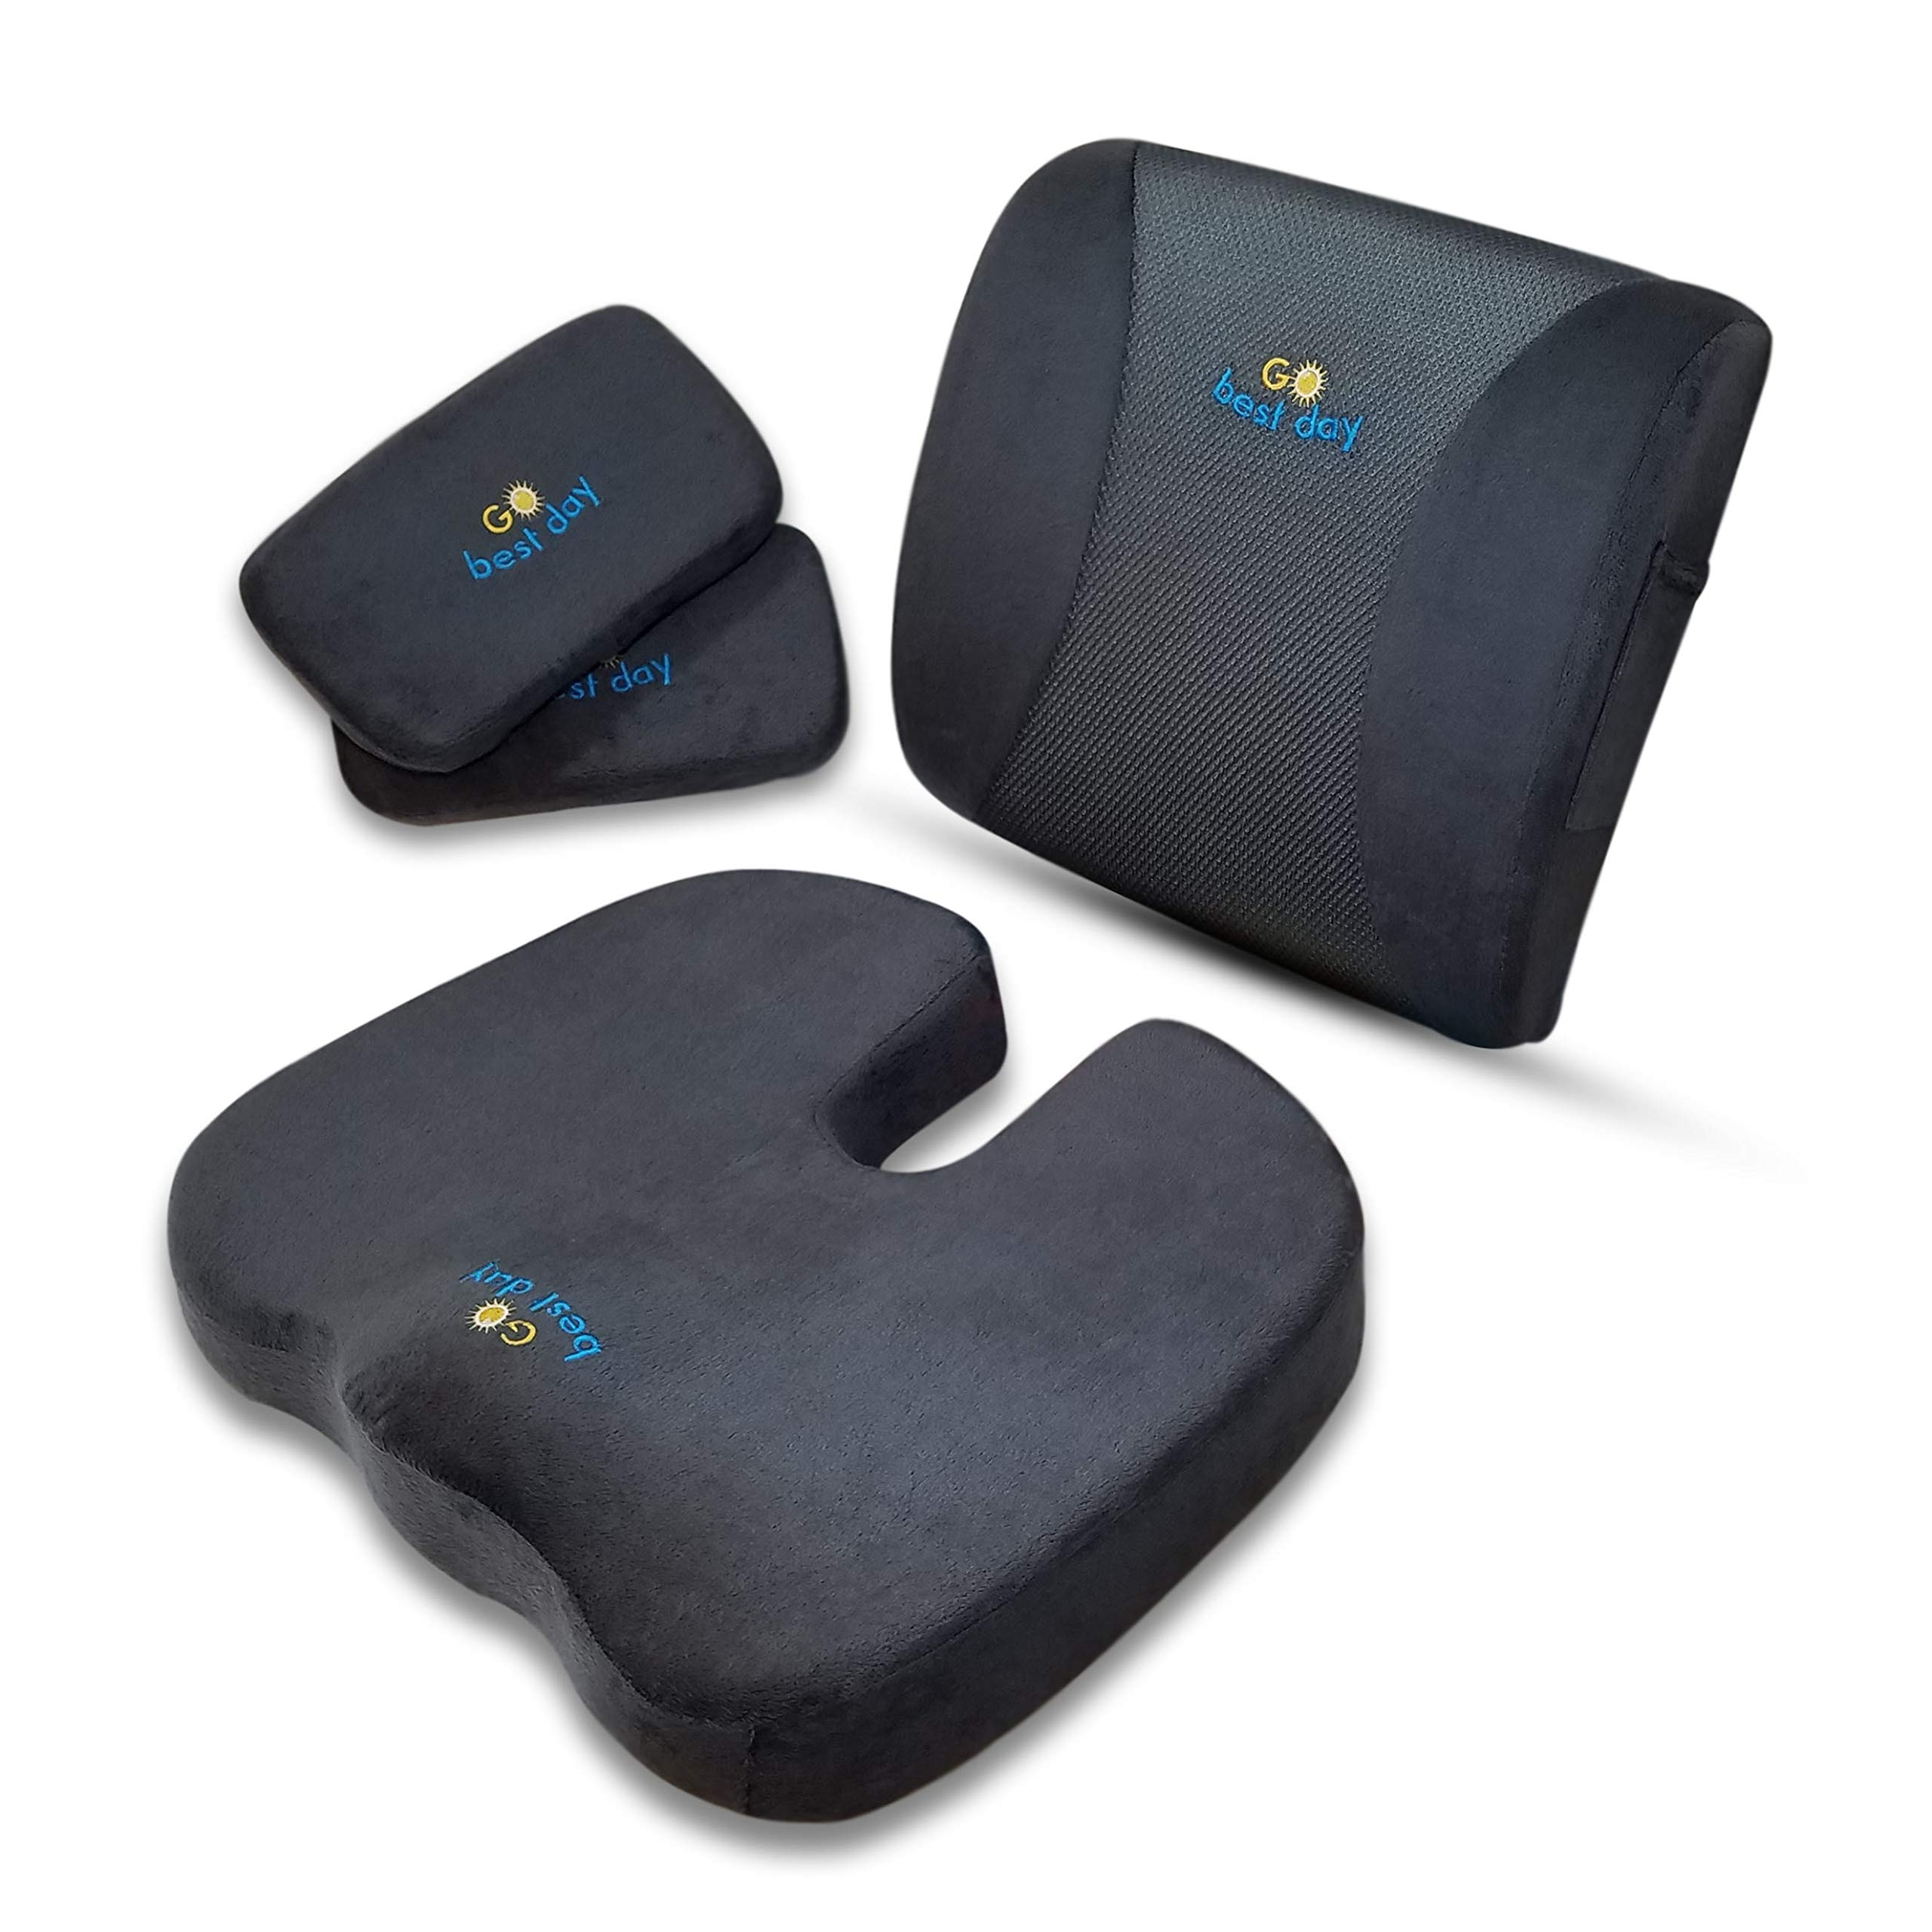 GoBestDay Seat Cushion Office Chair - Back Support and 2 Armrest Pads. Premium Memory Foam Relieve Coccyx Sciatica Tailbone Lumbar Pain. 3 in 1 Set Ideal for Car Seat Wheelchair Gaming Chair.